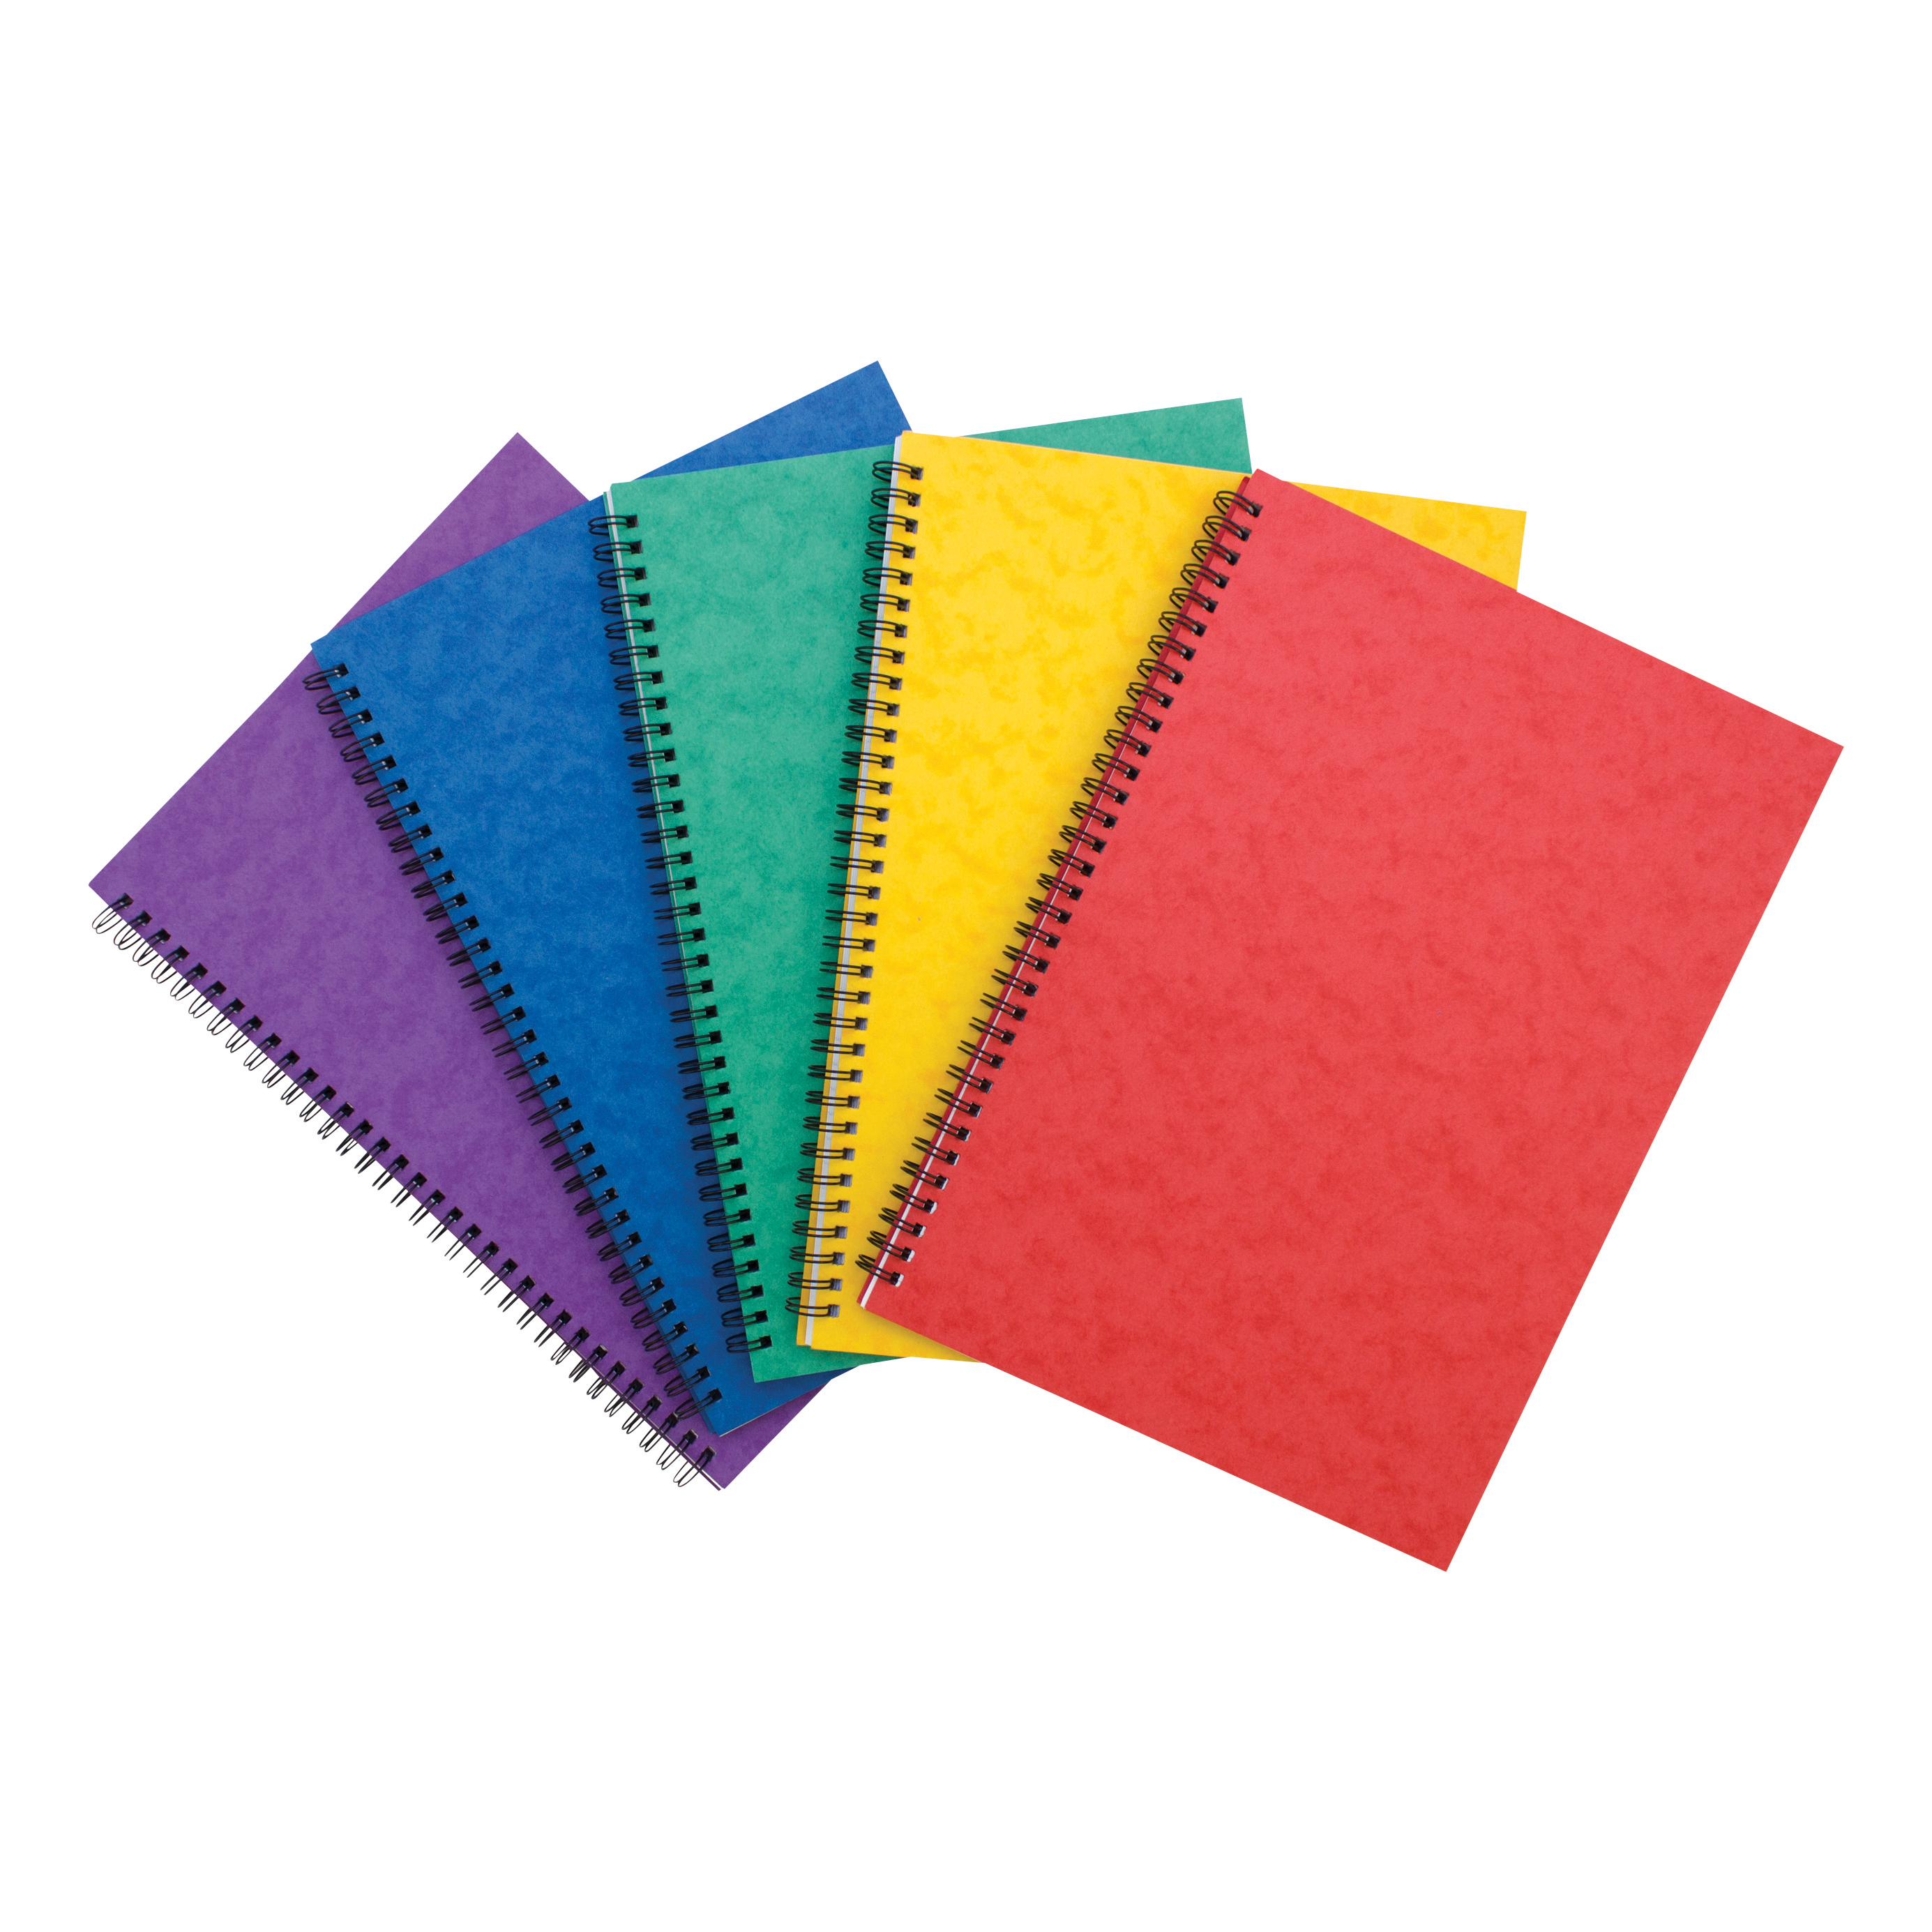 Notebook Side Wirebound 80gsm Ruled and Perforated 120pp A4 Assorted Colour A Pack 10